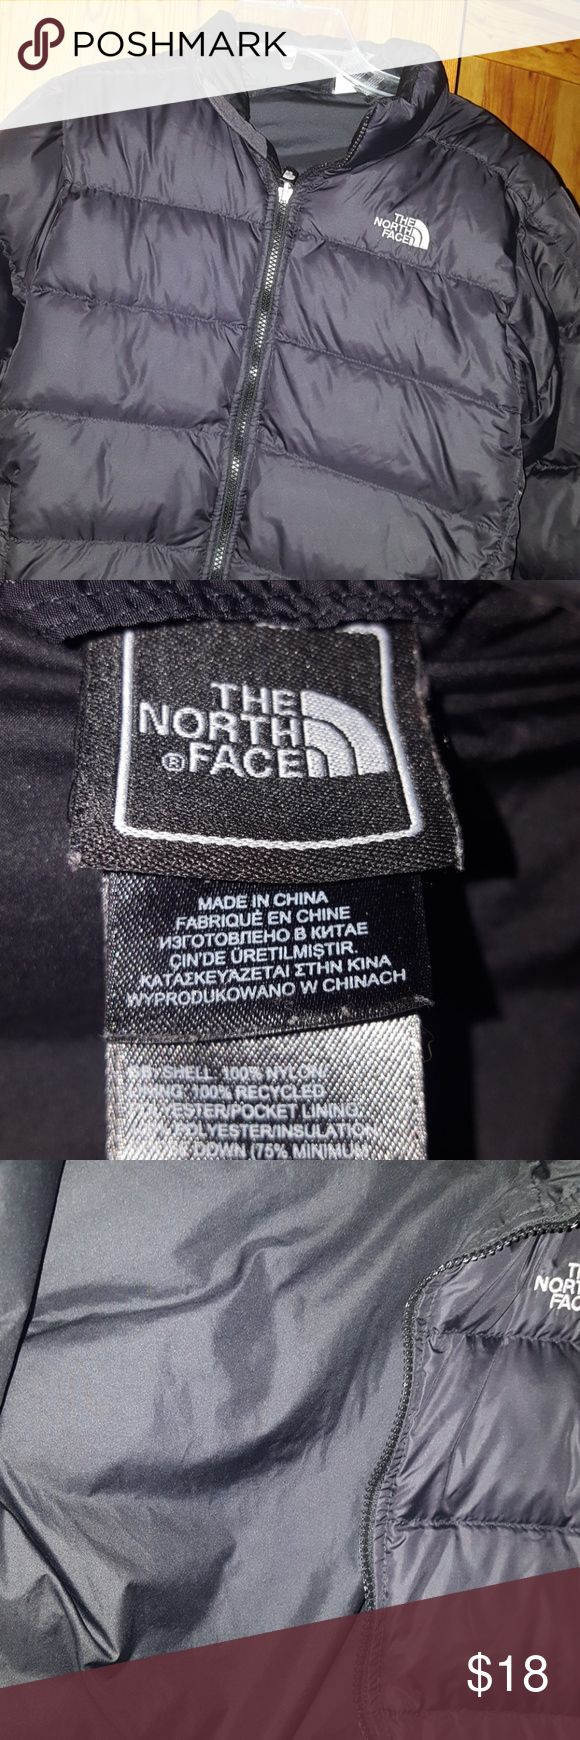 Boys The North Face winter coat Boys The North face winter coat. Size large (14/16) in gentle used condition The North Face Jackets & Coats